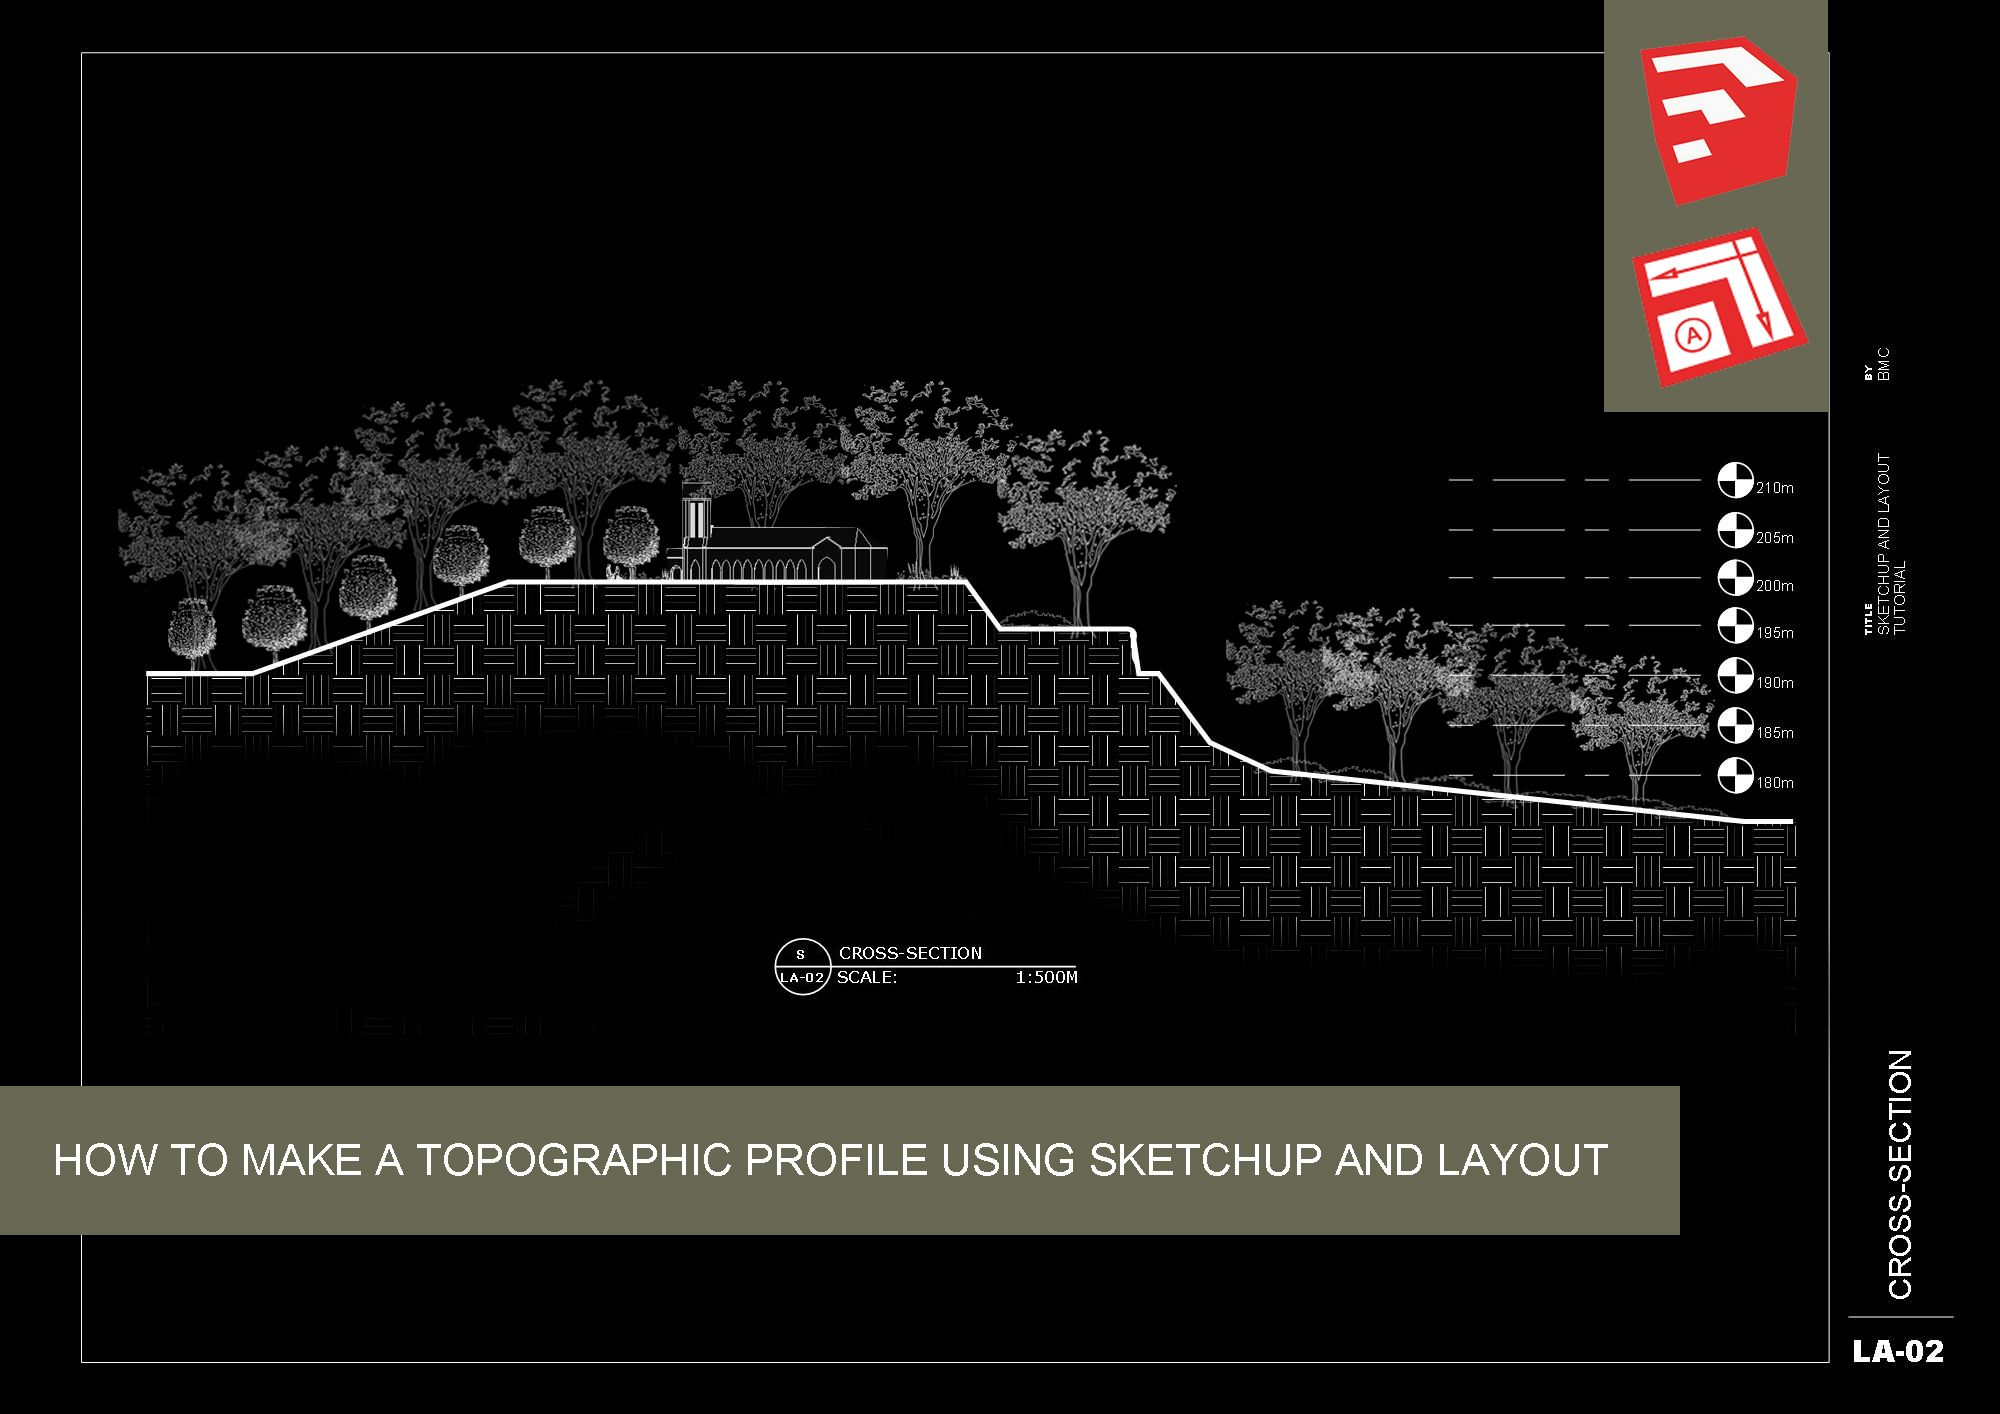 How To Make A Topographic Profile Using Sketchup And